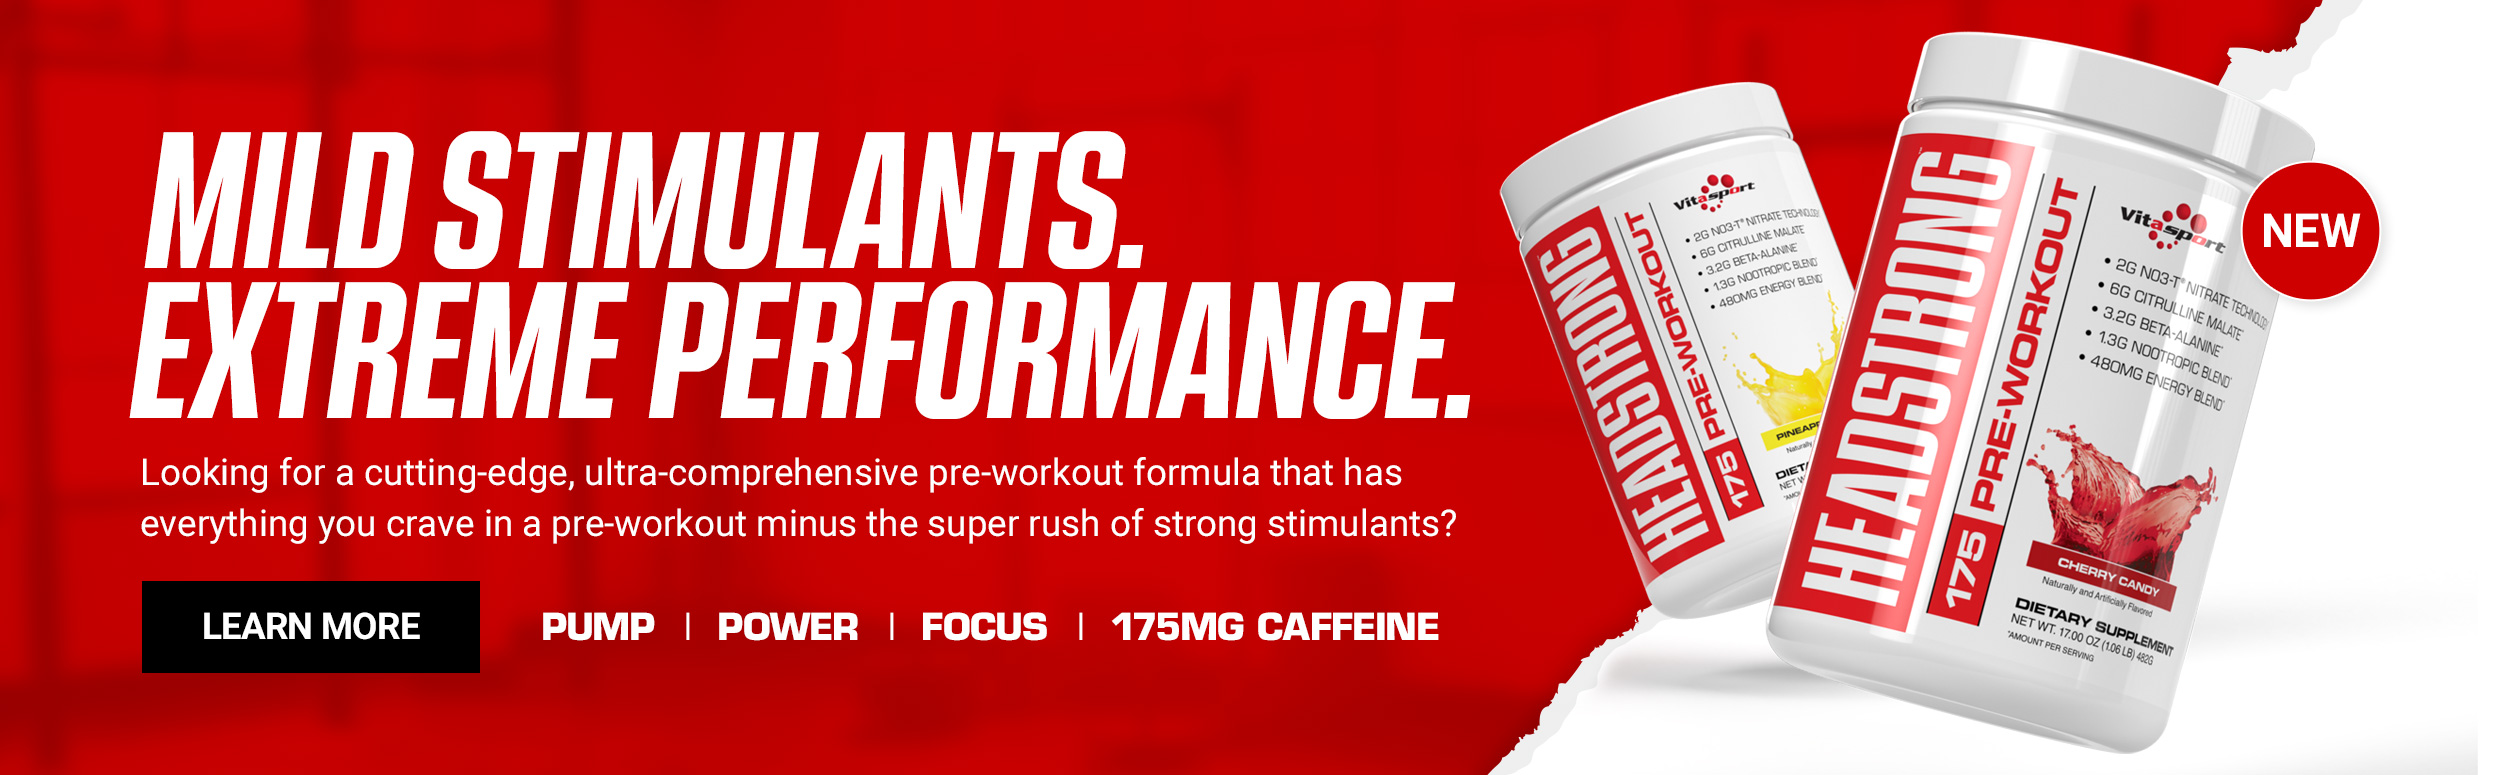 Vitasport Headstrong - Mild Stimulants, extreme performance. Click to Learn more